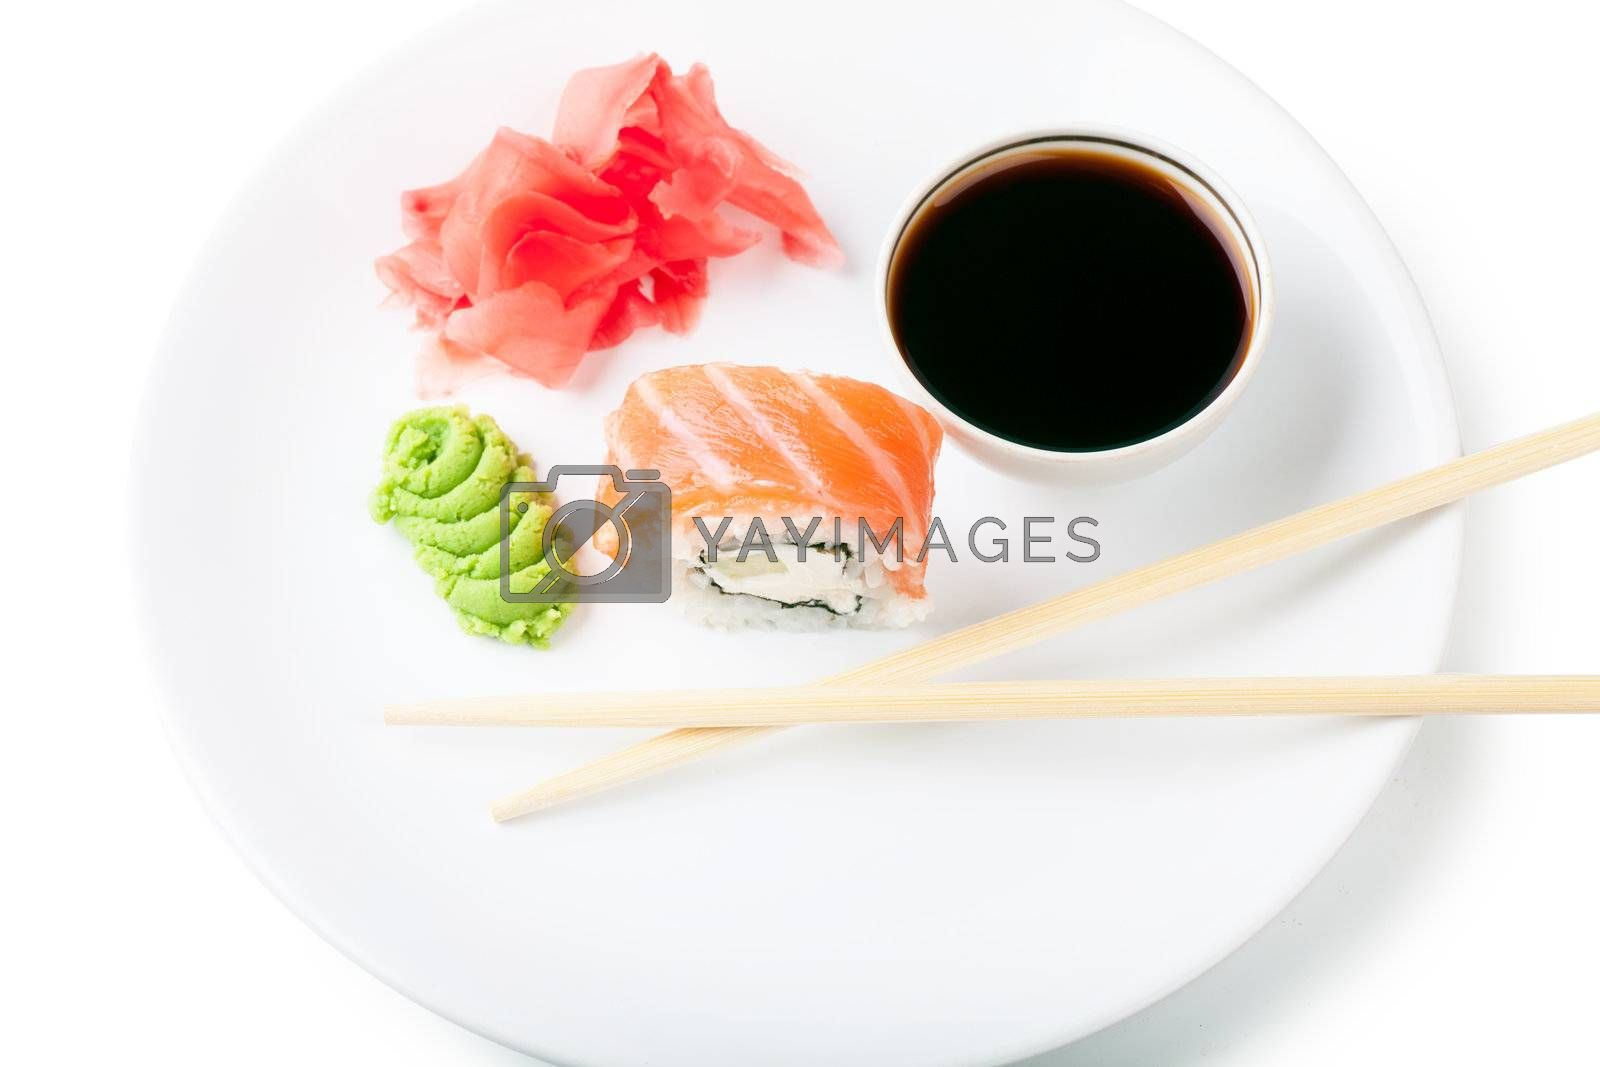 Sushi, soy and ginger with chopsticks on a white plate